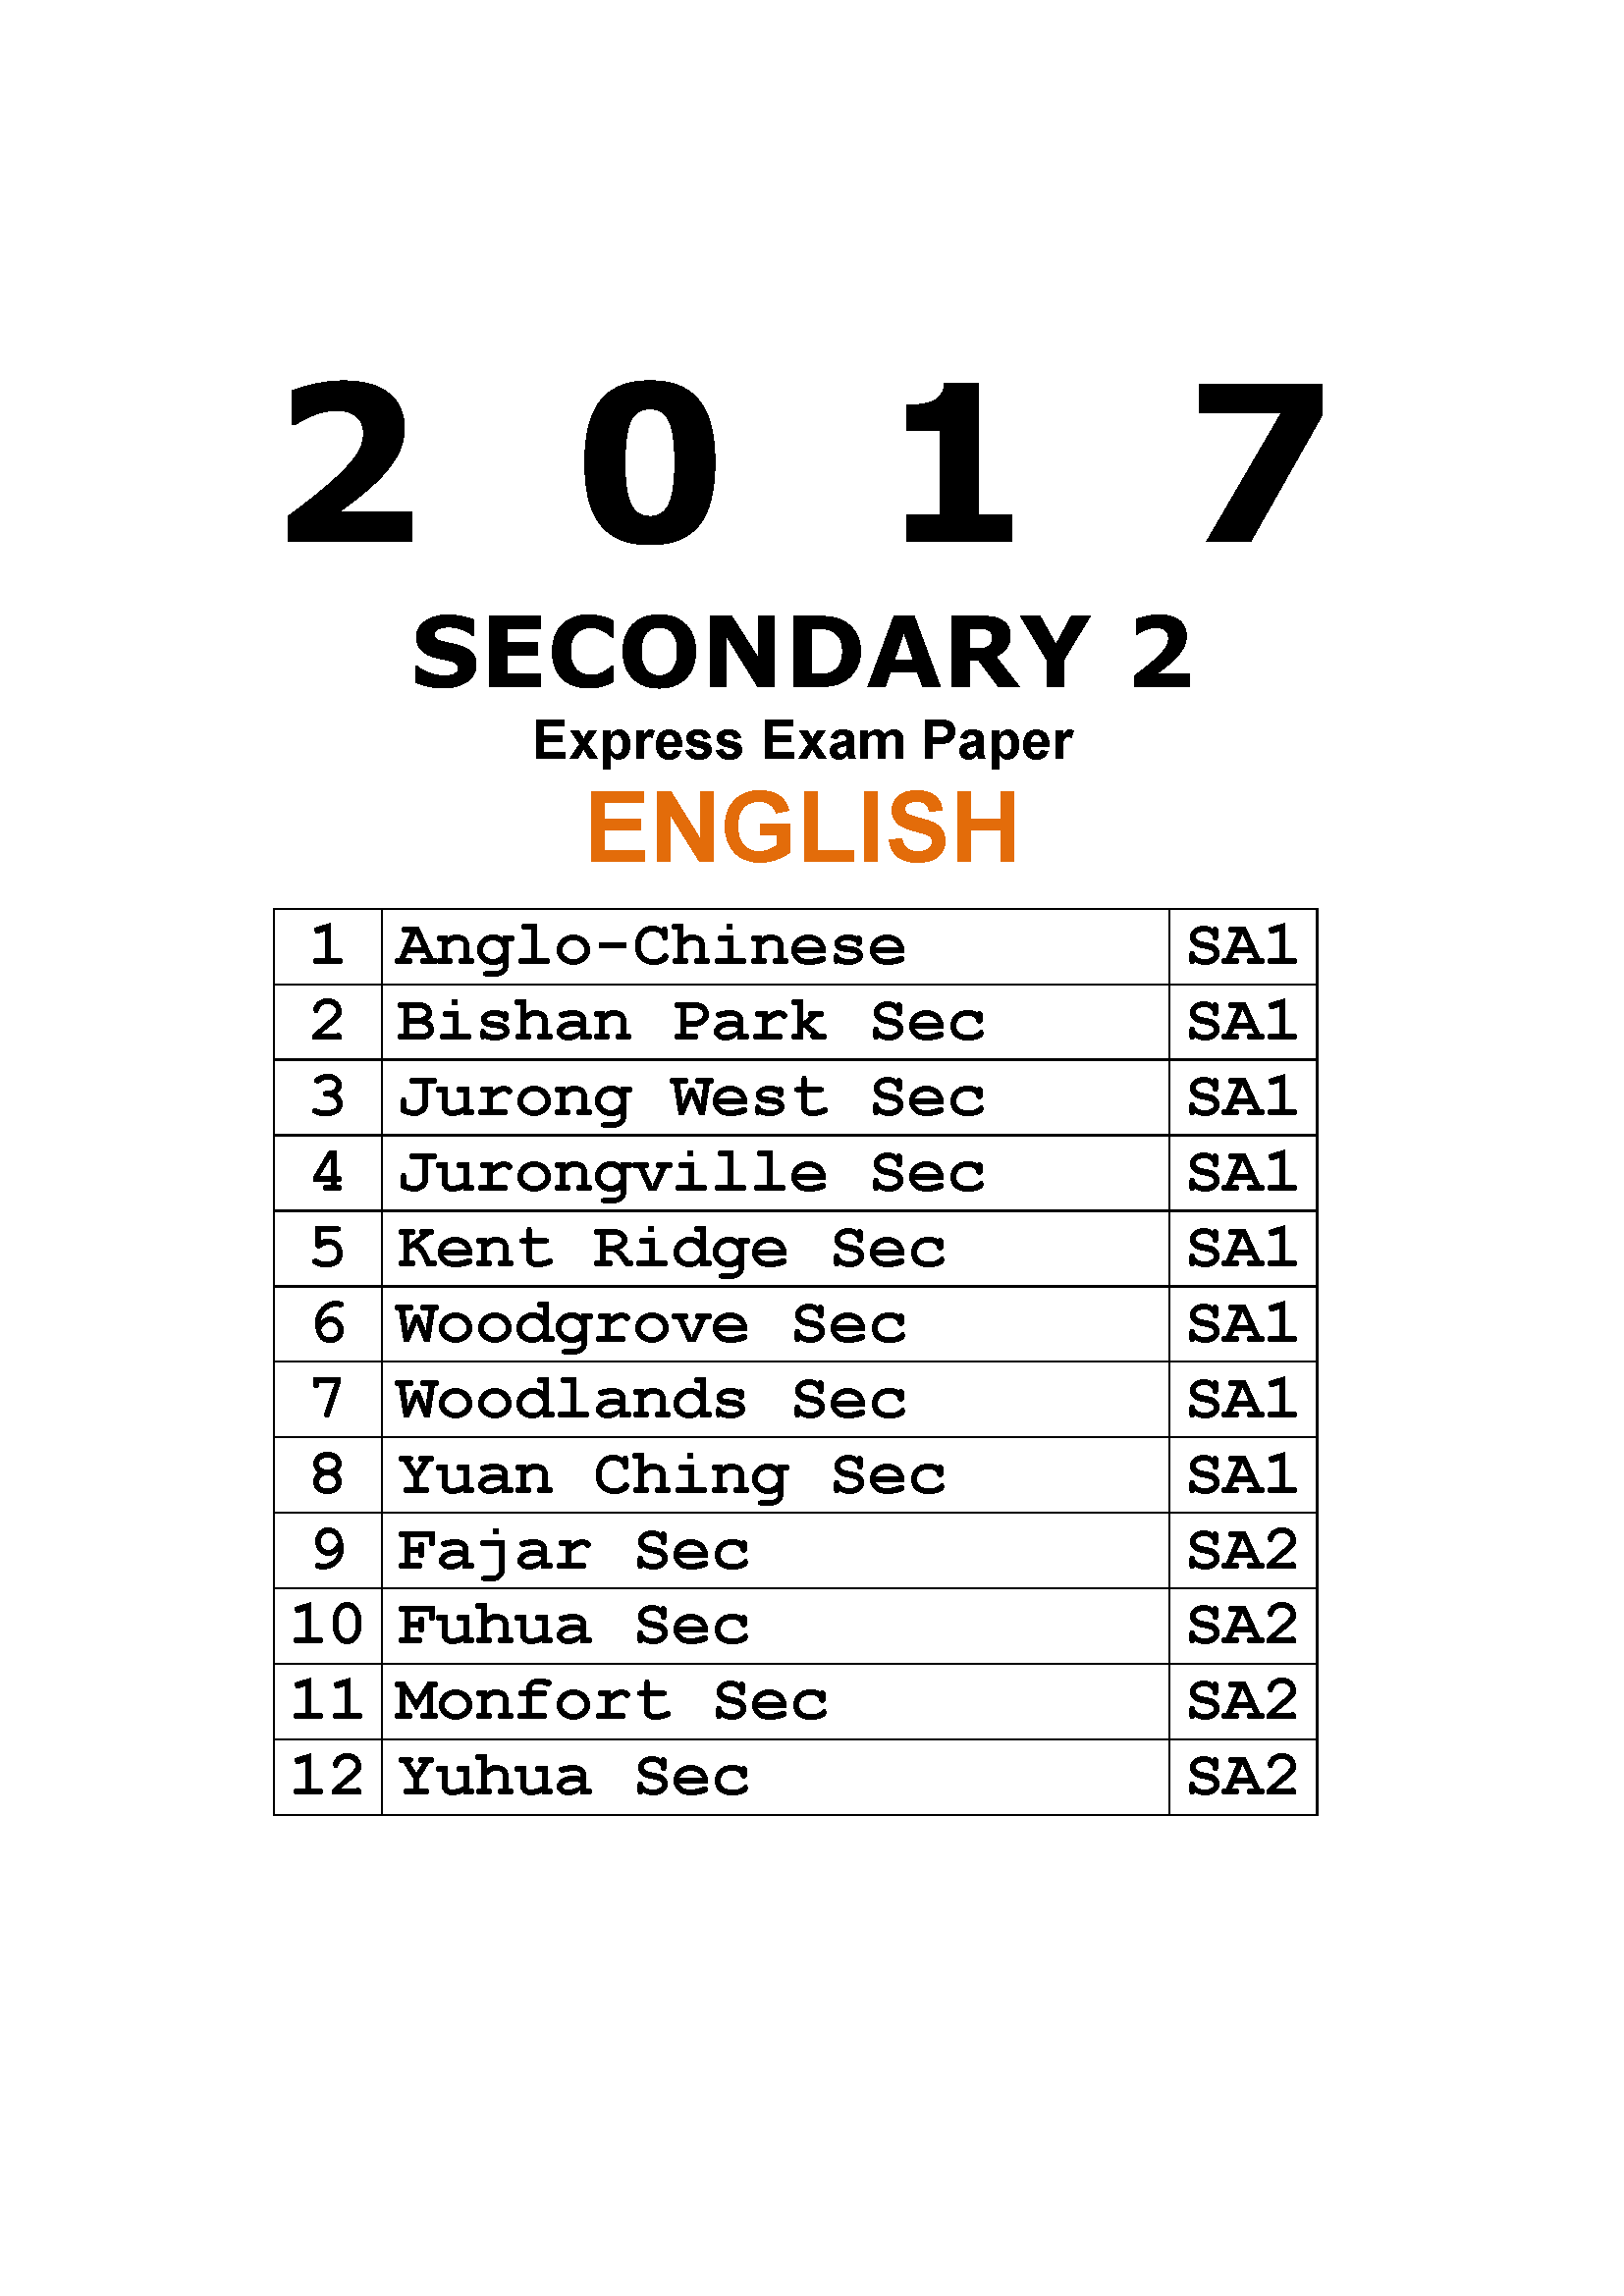 2017 Secondary 2 Express English Exam Paper (hardcopy